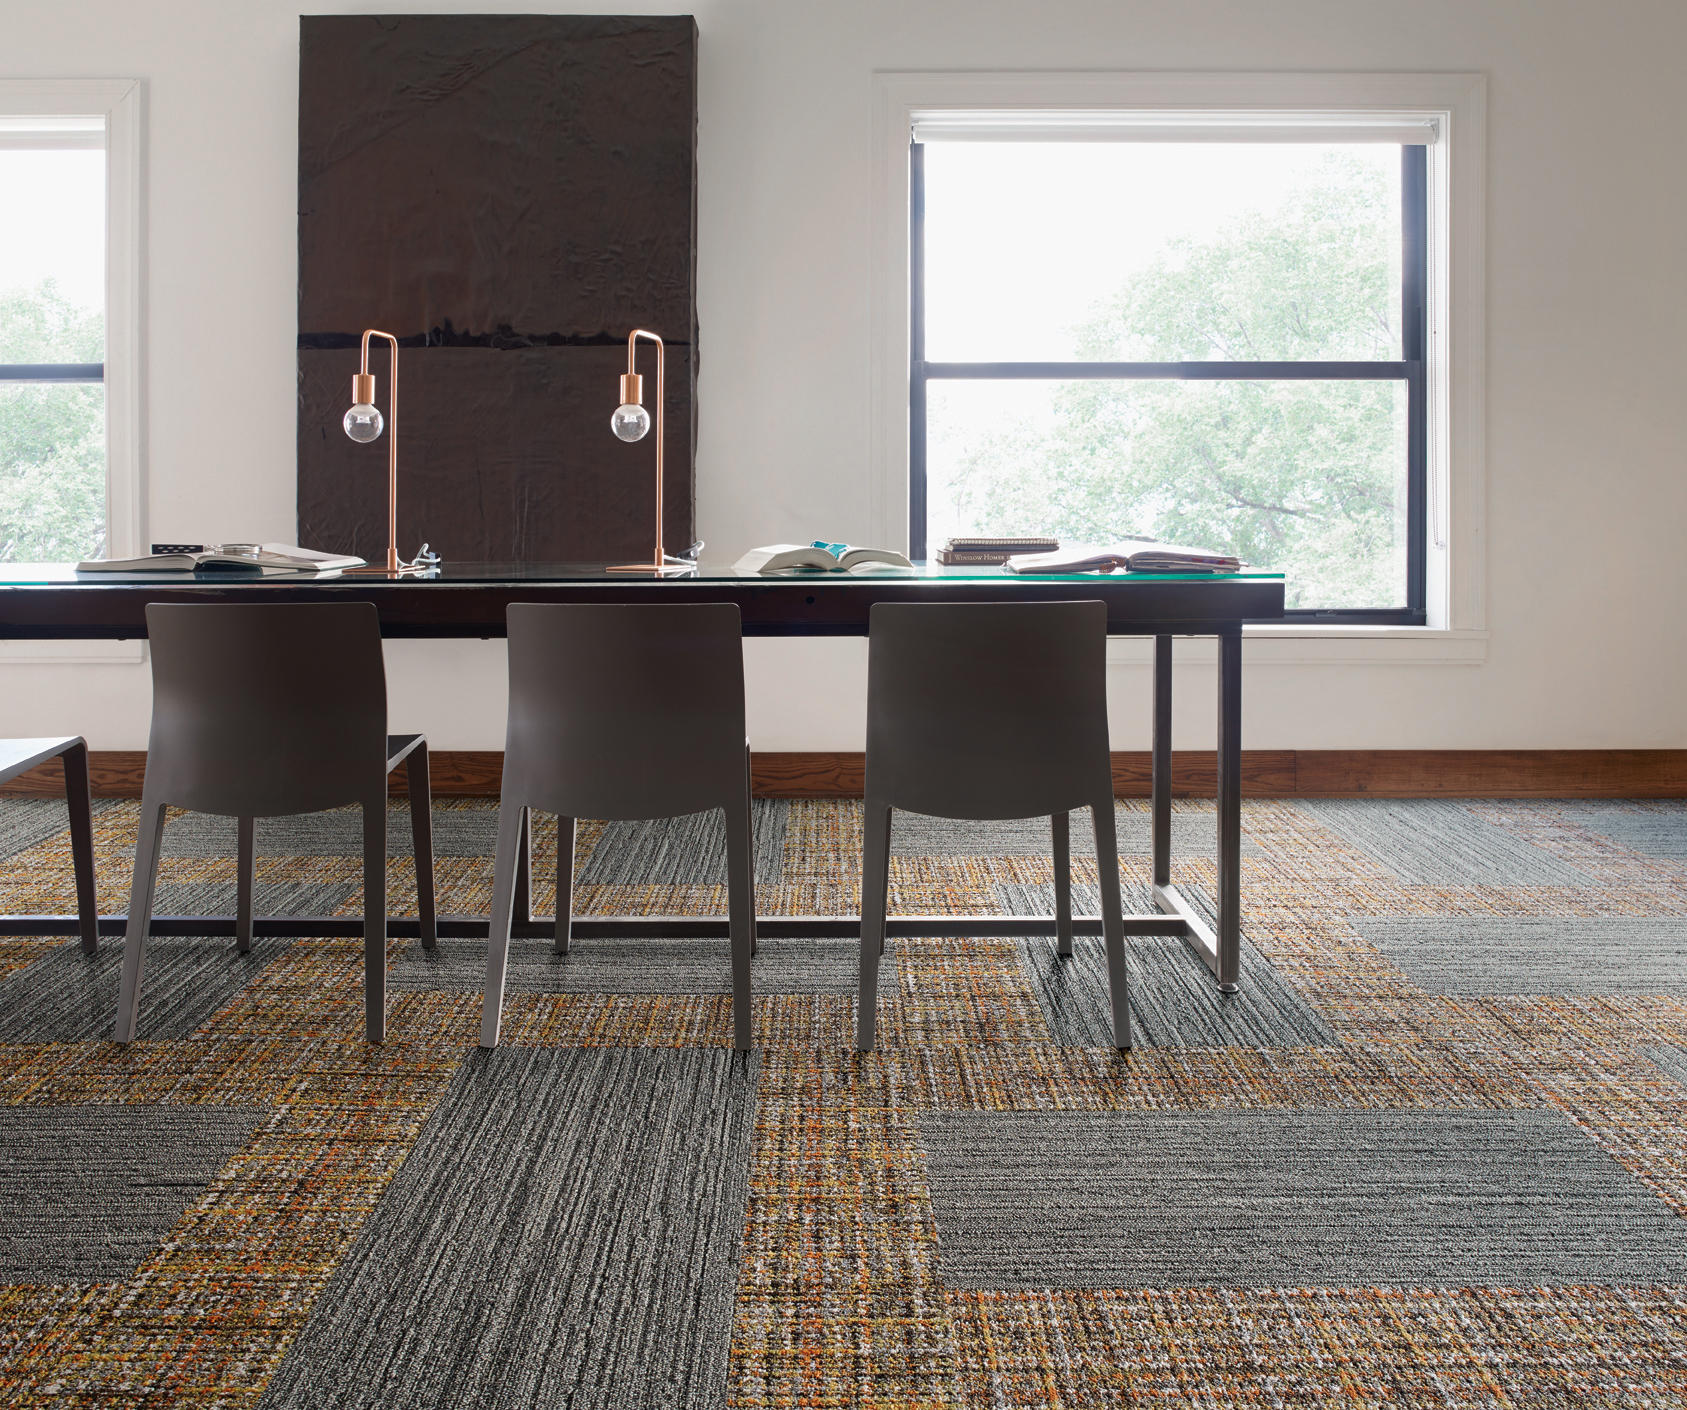 World Woven 895 Heather Weave Carpet Tiles From